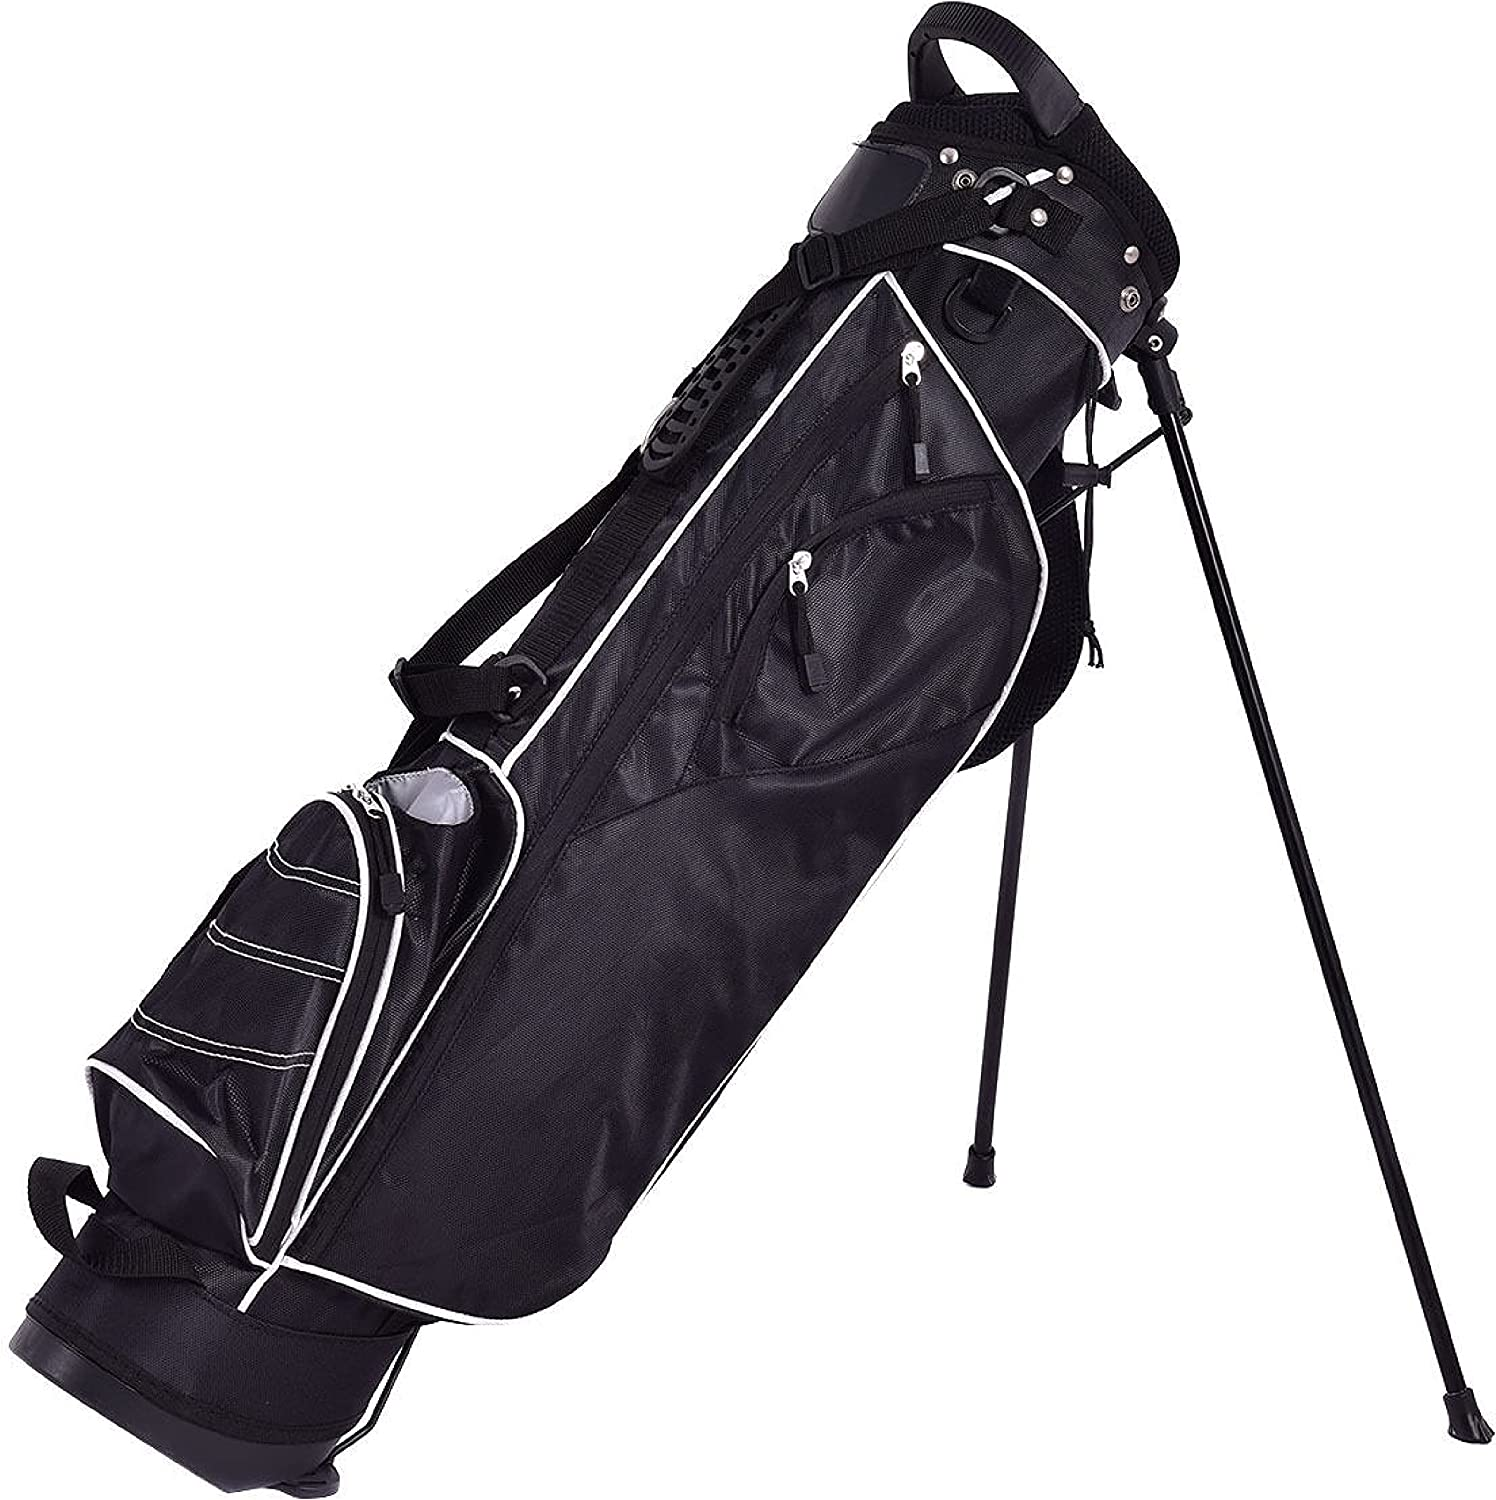 HomyDelight Golf Finally resale start Product Club Stand Cart Bag Way 4 with Divider Ca